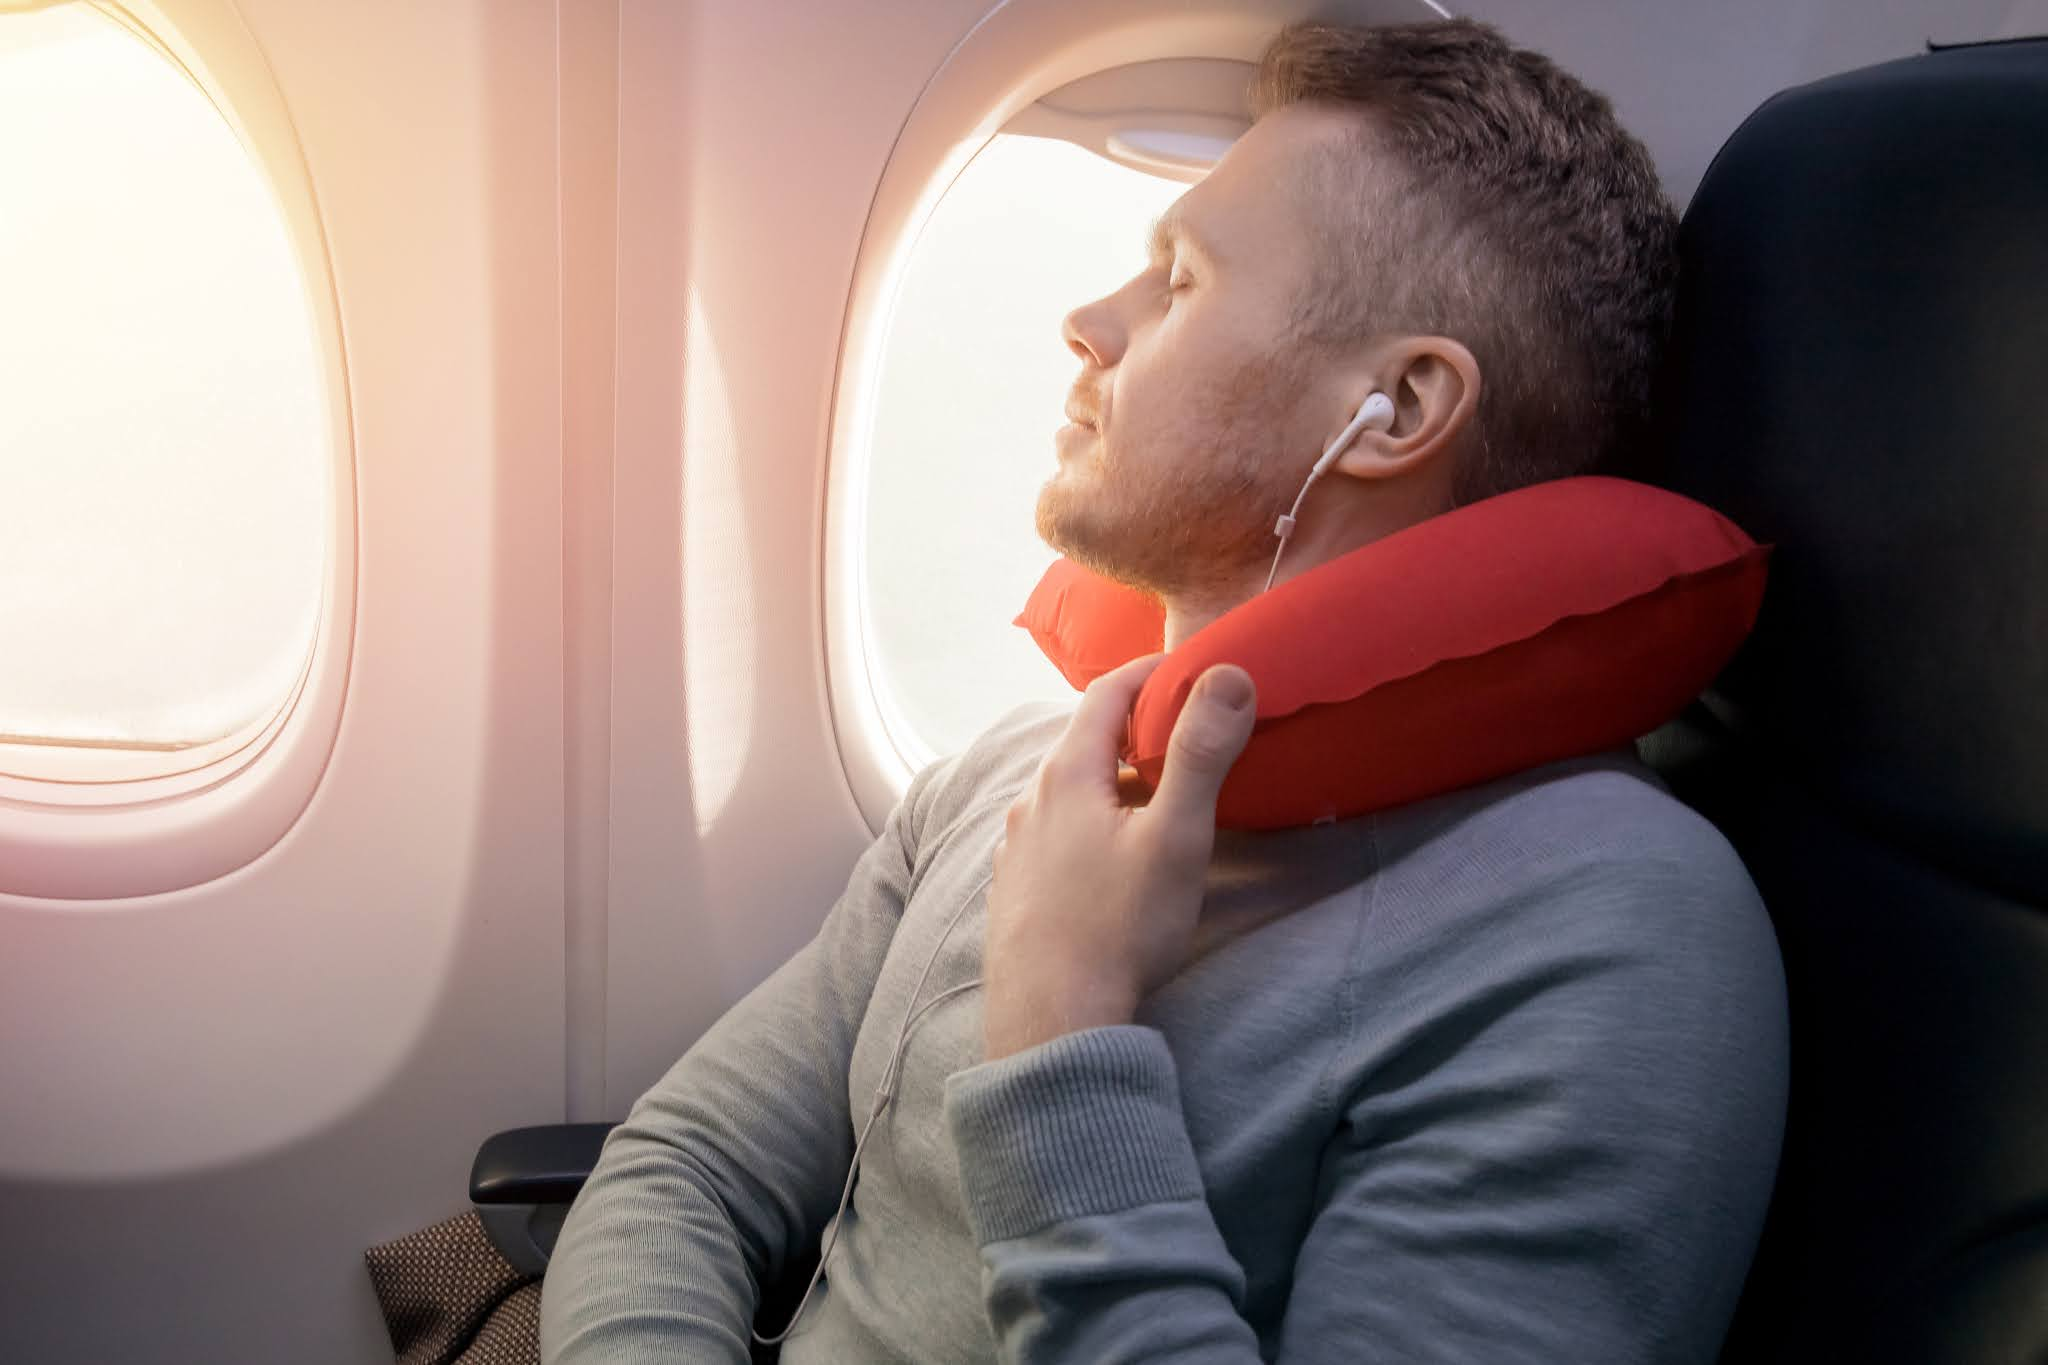 How To Choose The Right Pillow For Neck Pain